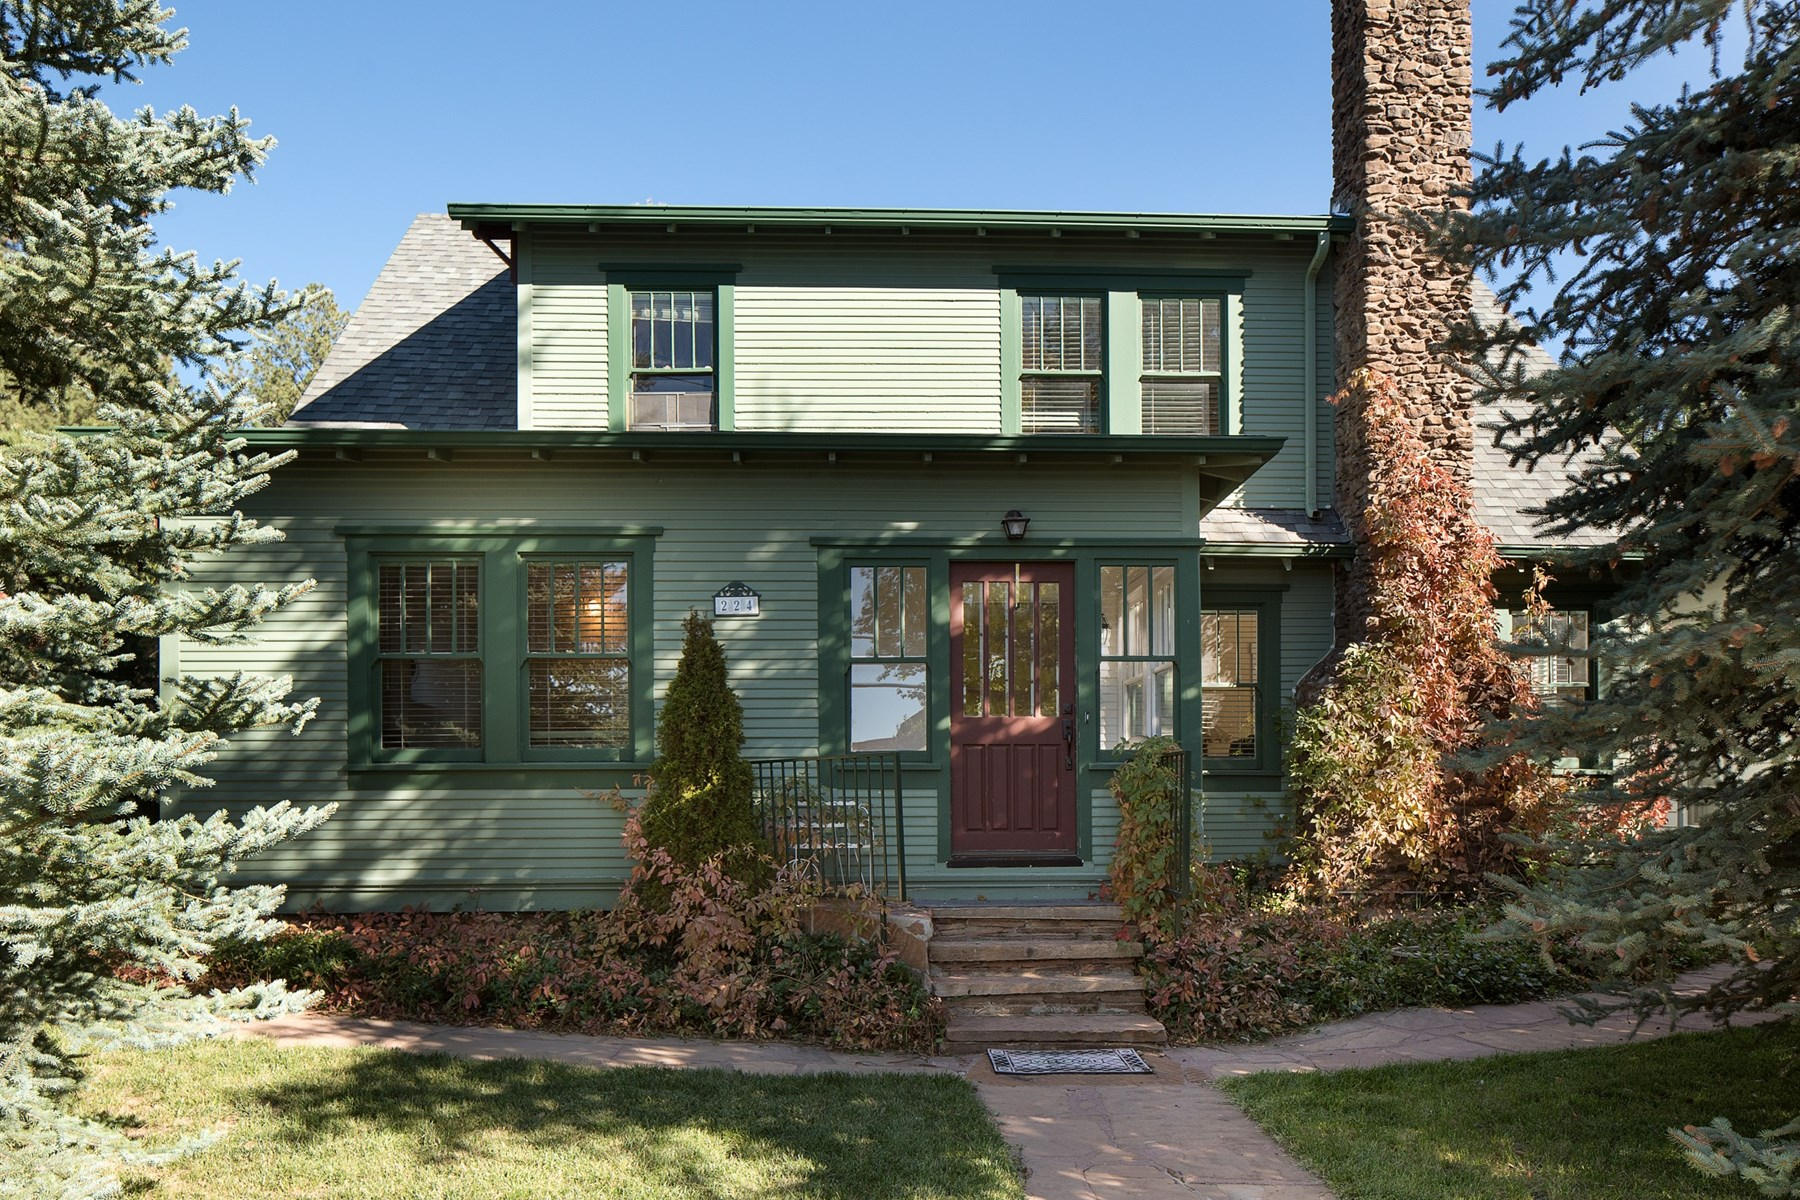 Maison unifamiliale pour l Vente à Gorgeous 1906 historic home in downtown Flagstaff 224 N Elden St Flagstaff, Arizona, 86001 États-Unis